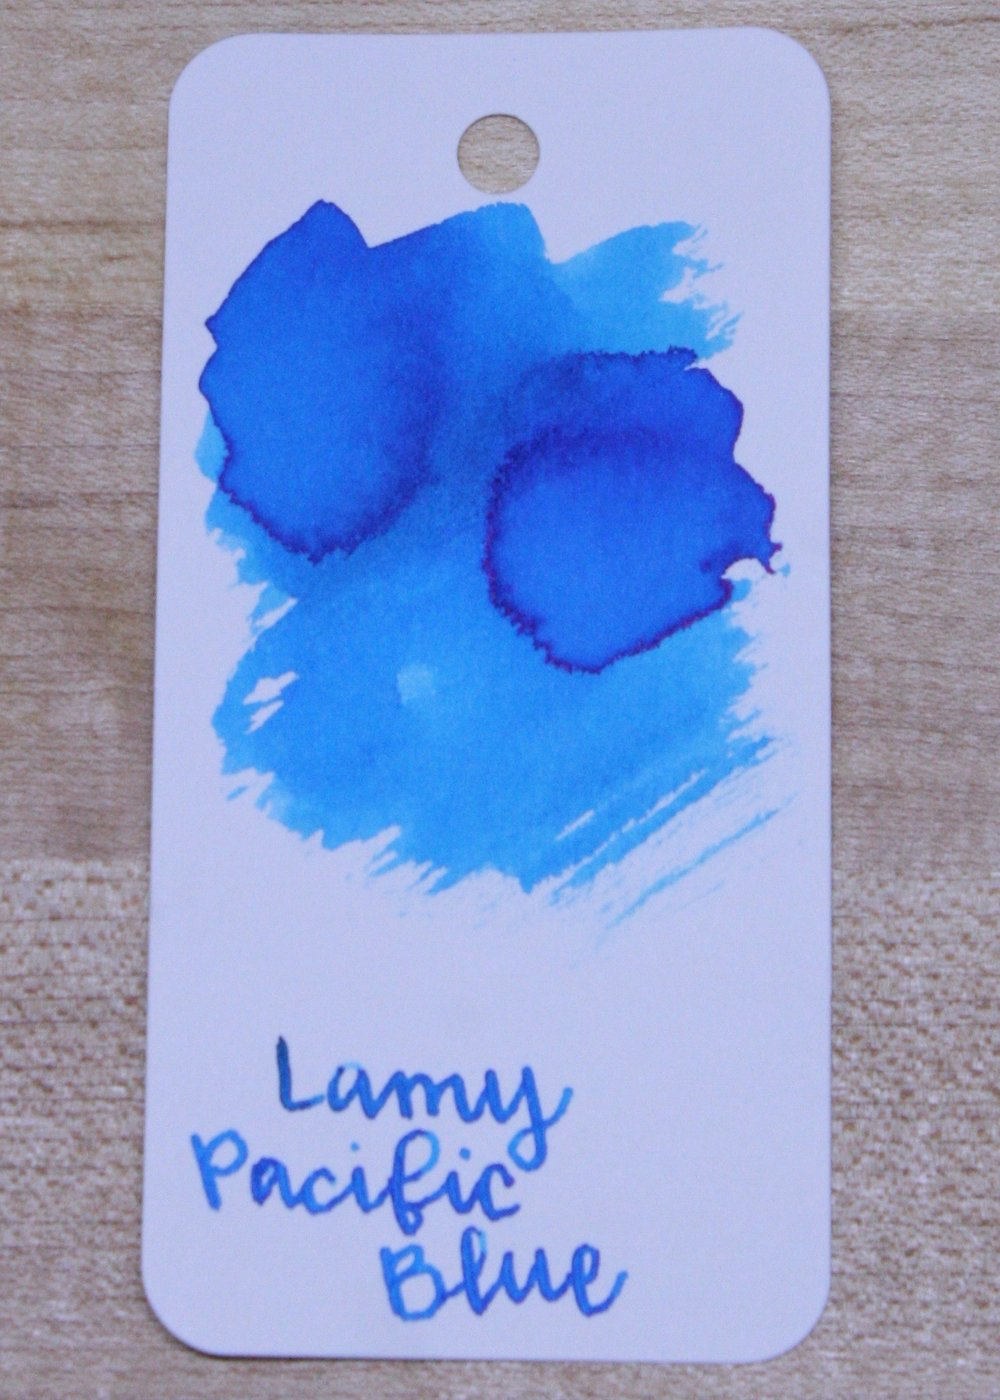 The color... - The ink is a beautiful blue, that gives off a red/pink sheen when concentrated. I love to coordinate my ink colors by season, and this would be a perfect summer blue.